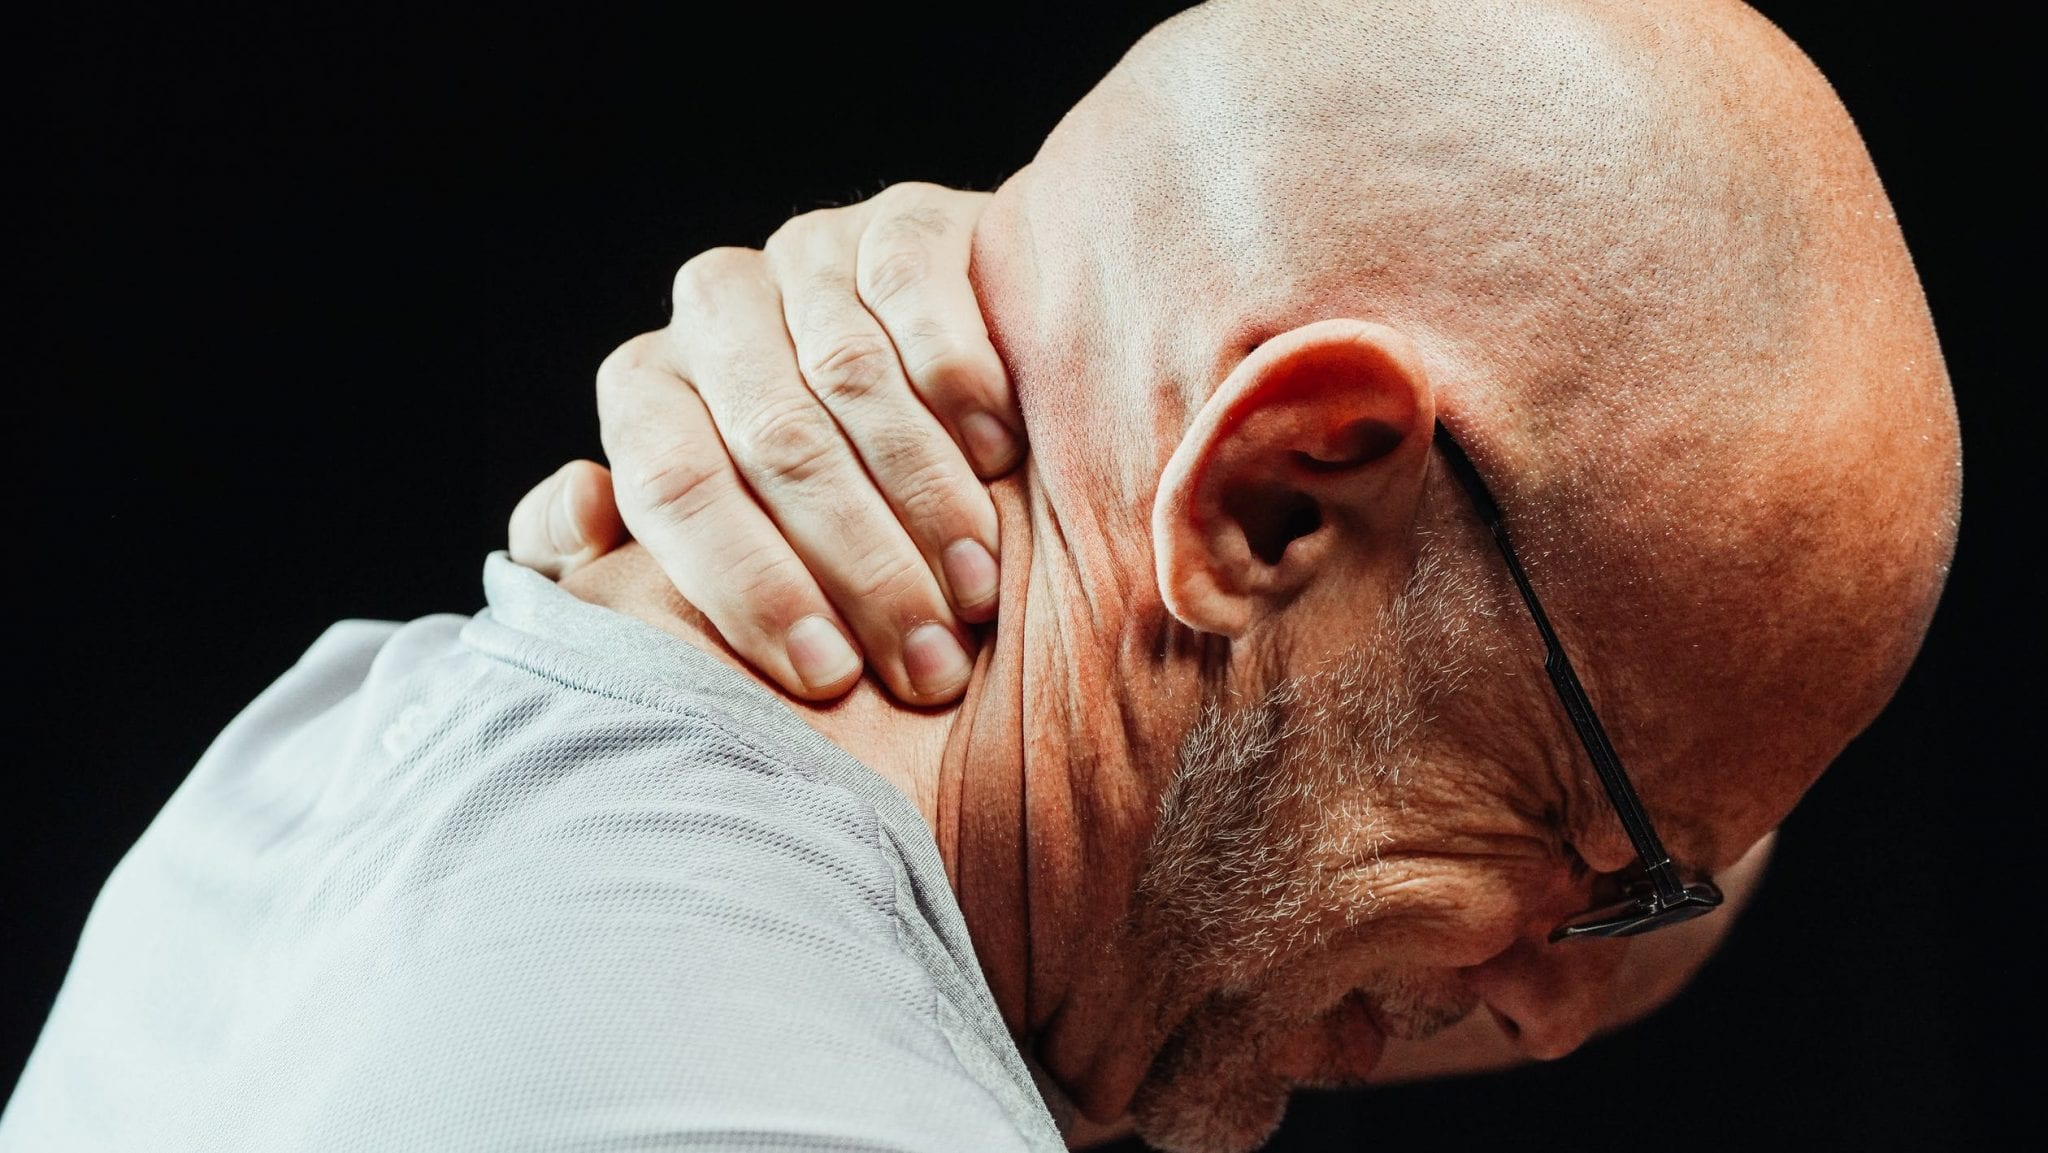 Man holding the back of his injured neck